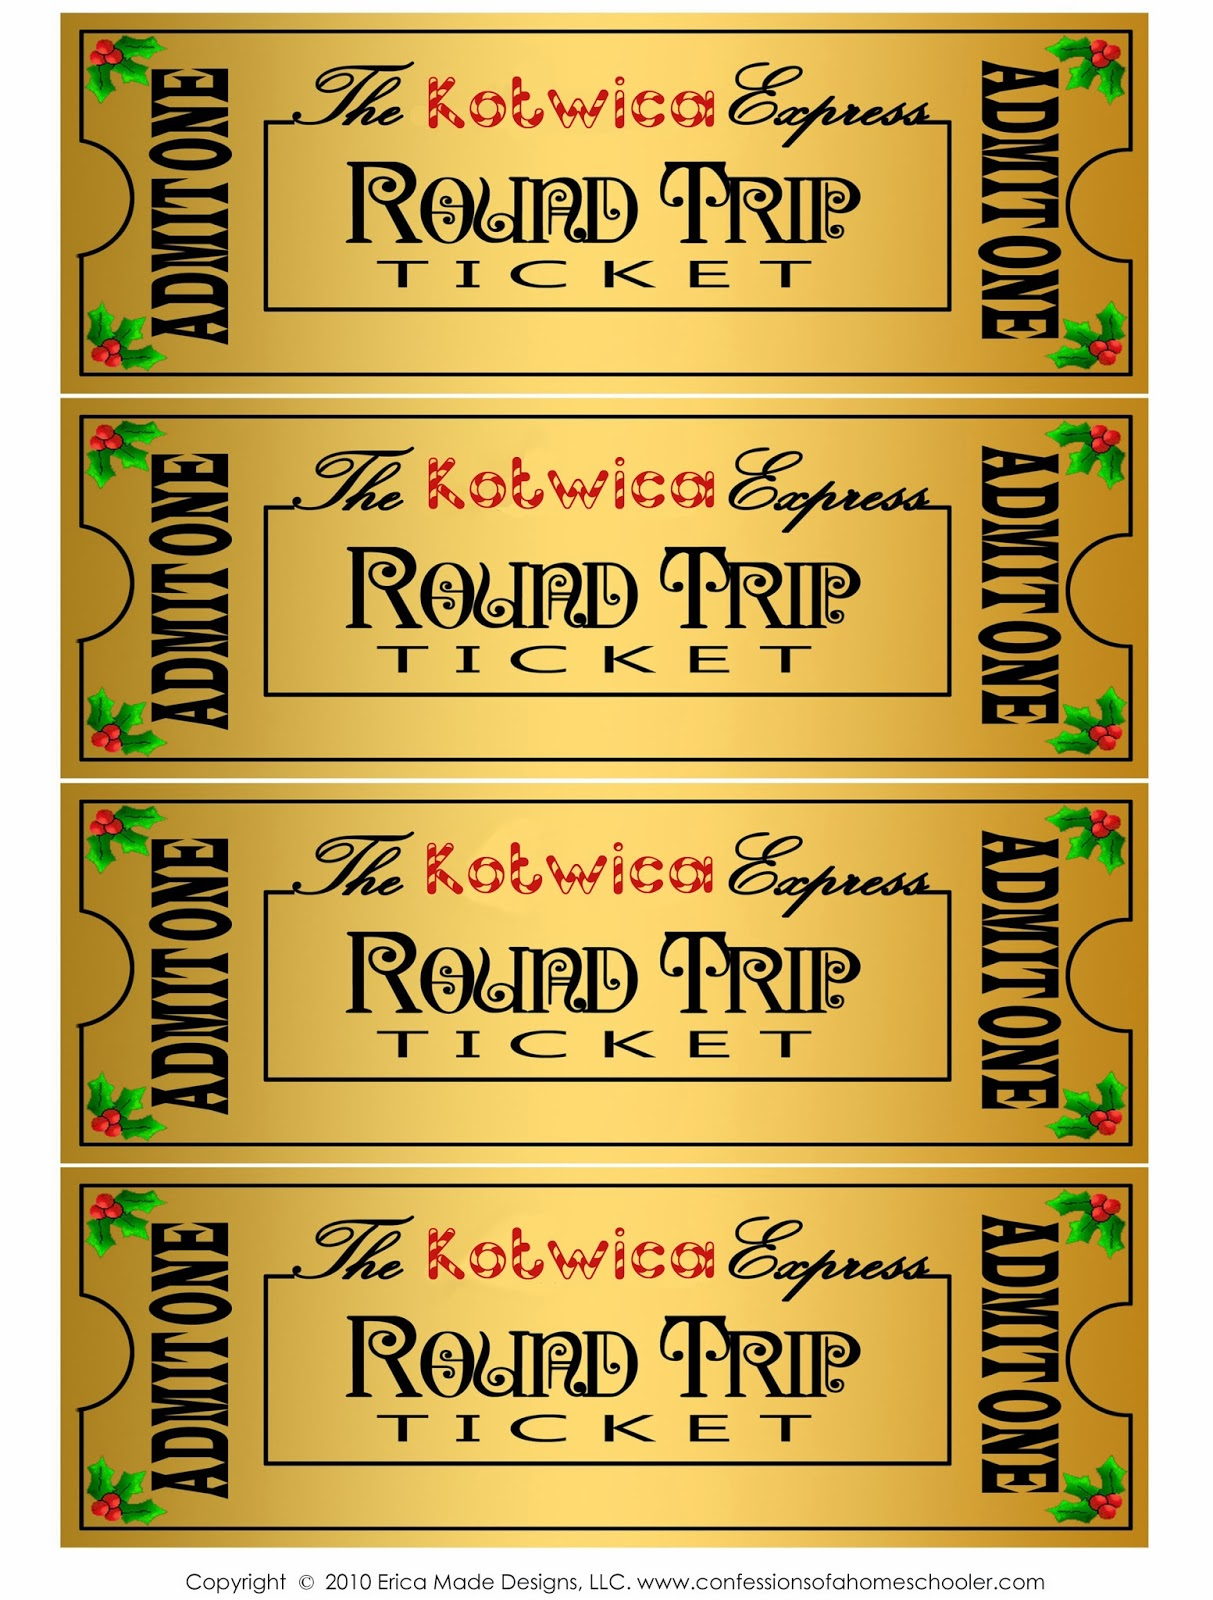 Polar express ticket printable template 9355145 hitori49fo polar express ticket printable template this page contains information about polar express ticket printable template maxwellsz